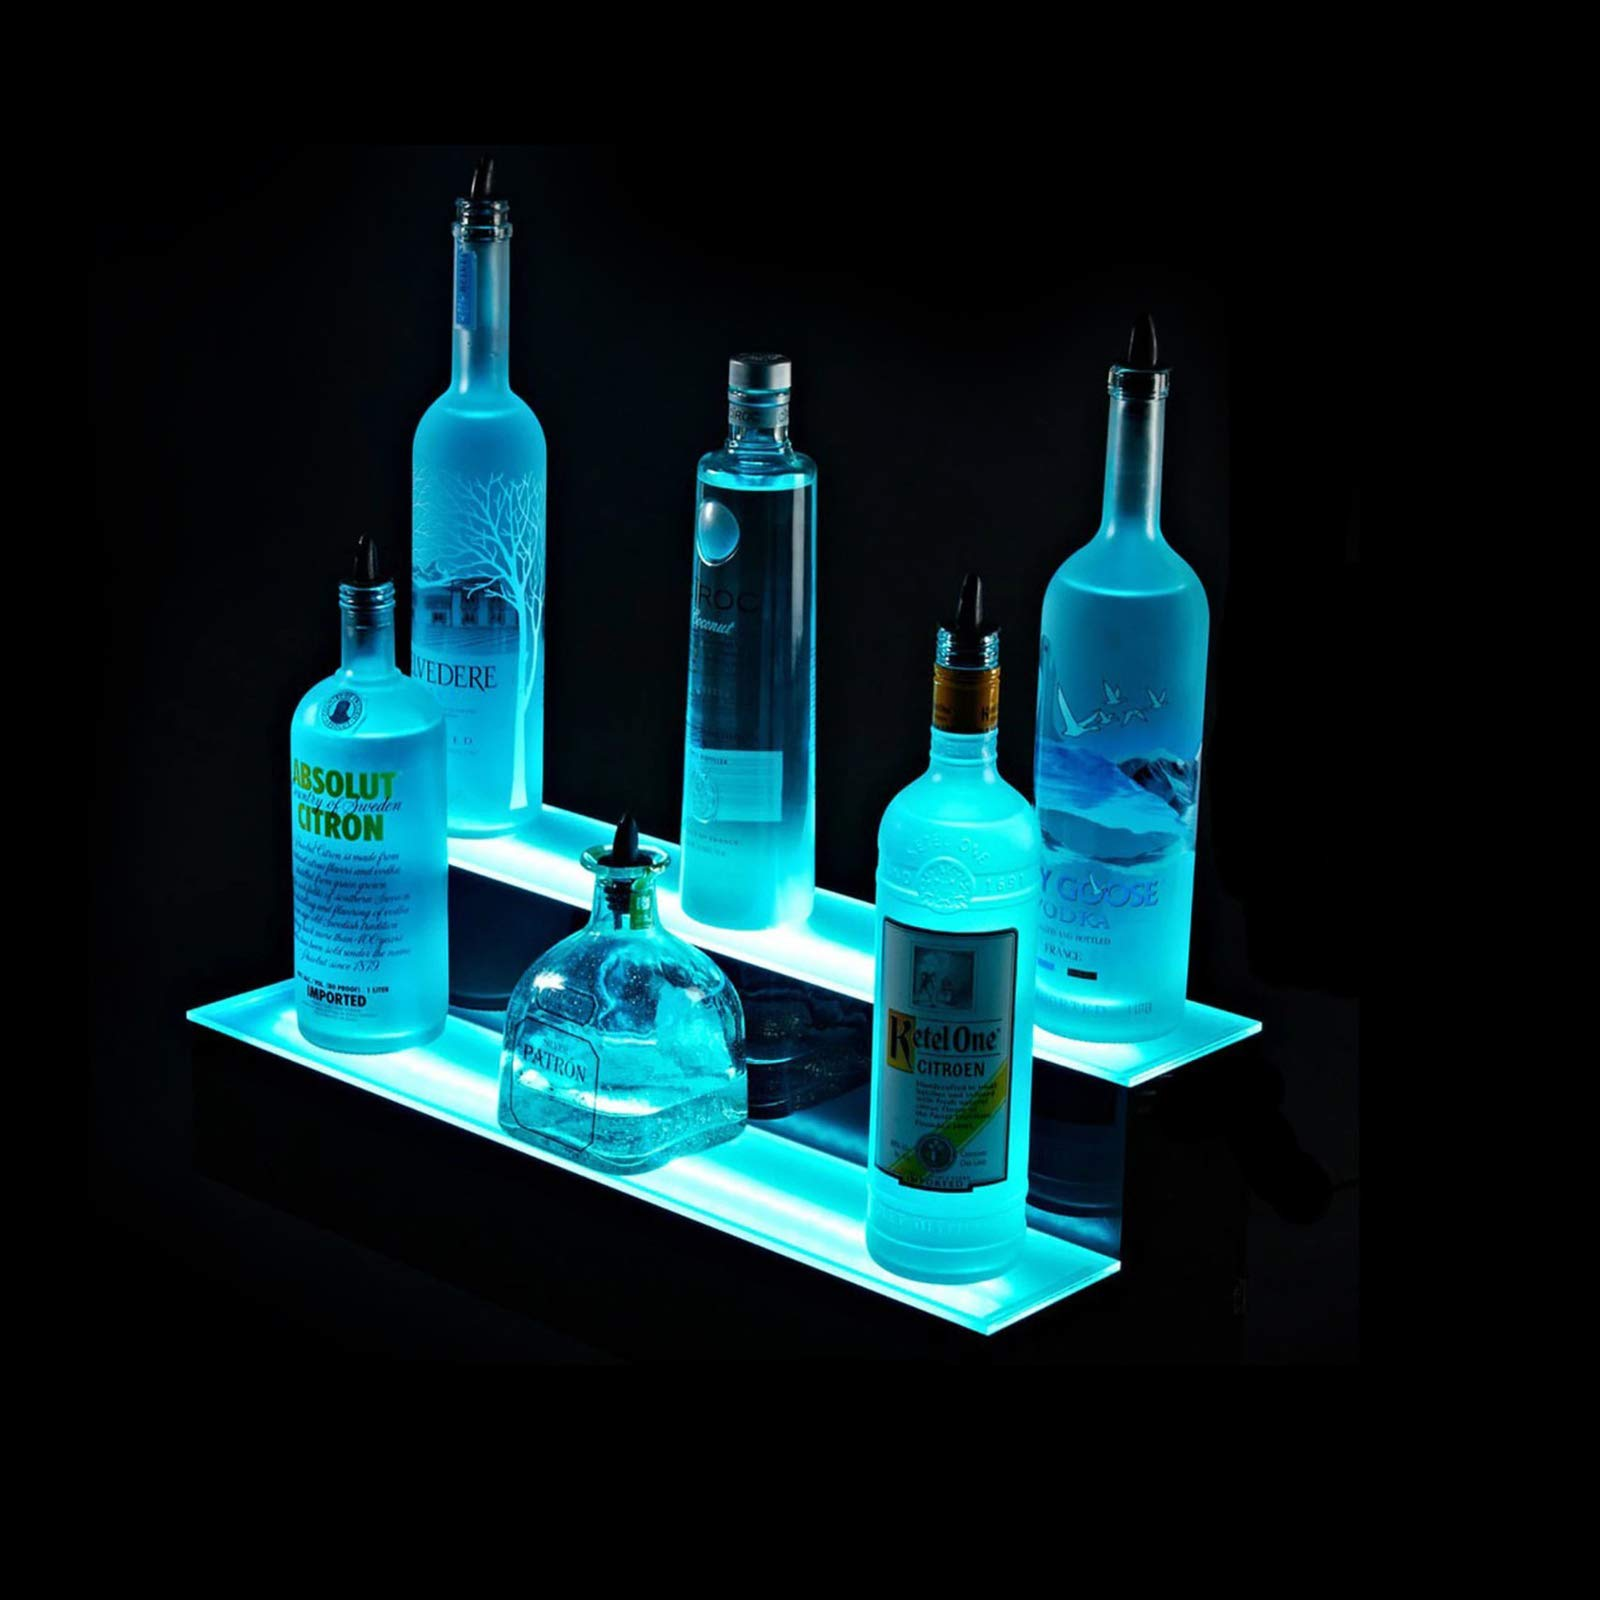 SUNCOO LED Lighted Liquor Bottle Display 16 inches 2 Step Illuminated Bottle Shelf 2 Tier Home Bar Bottle Shelf Drinks Lighting Shelves Home Bar Lighting with Remote Control